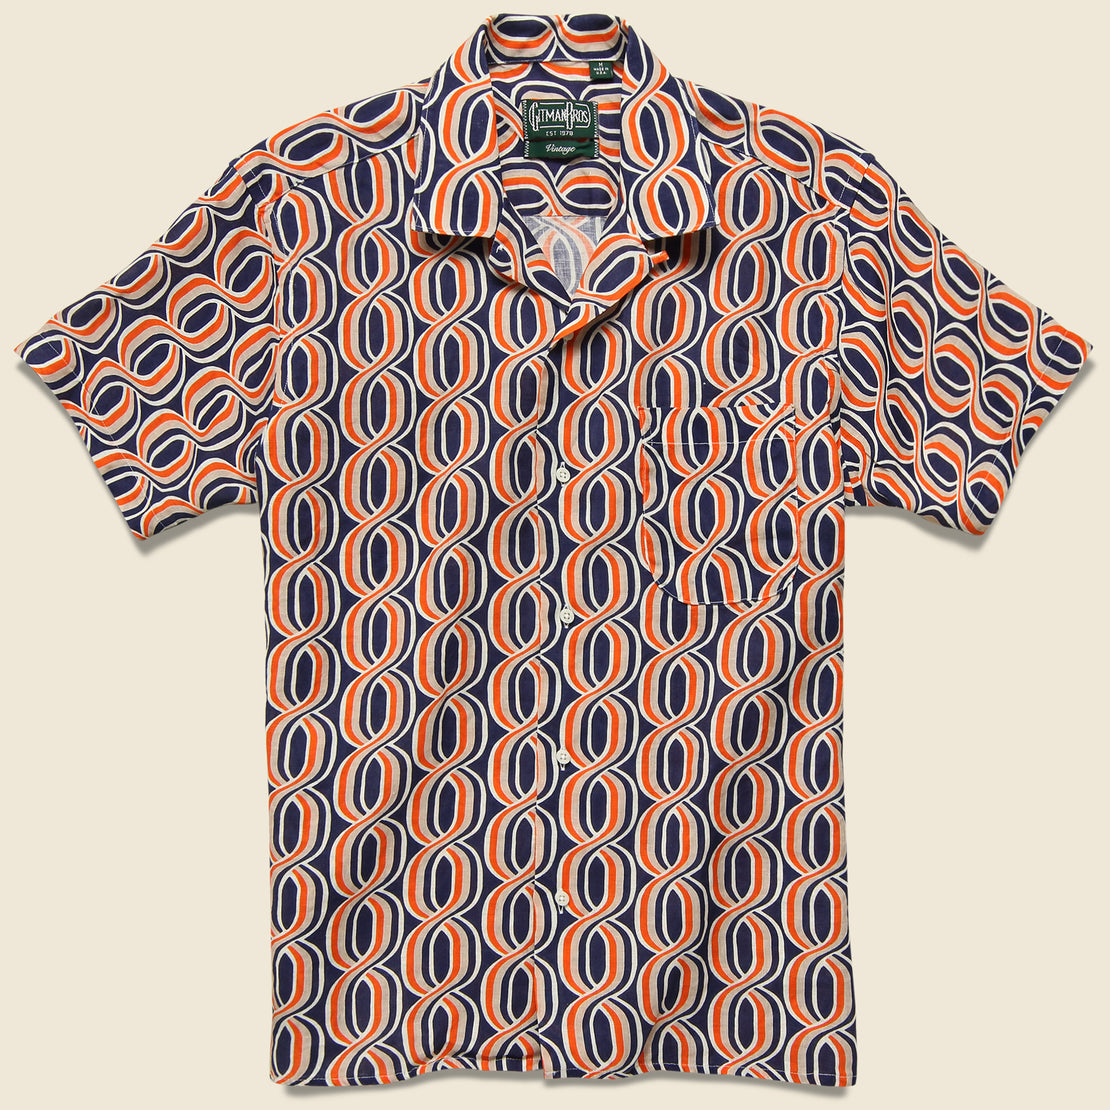 Gitman Vintage Gio Ponti Linen Camp Shirt - Orange/Navy